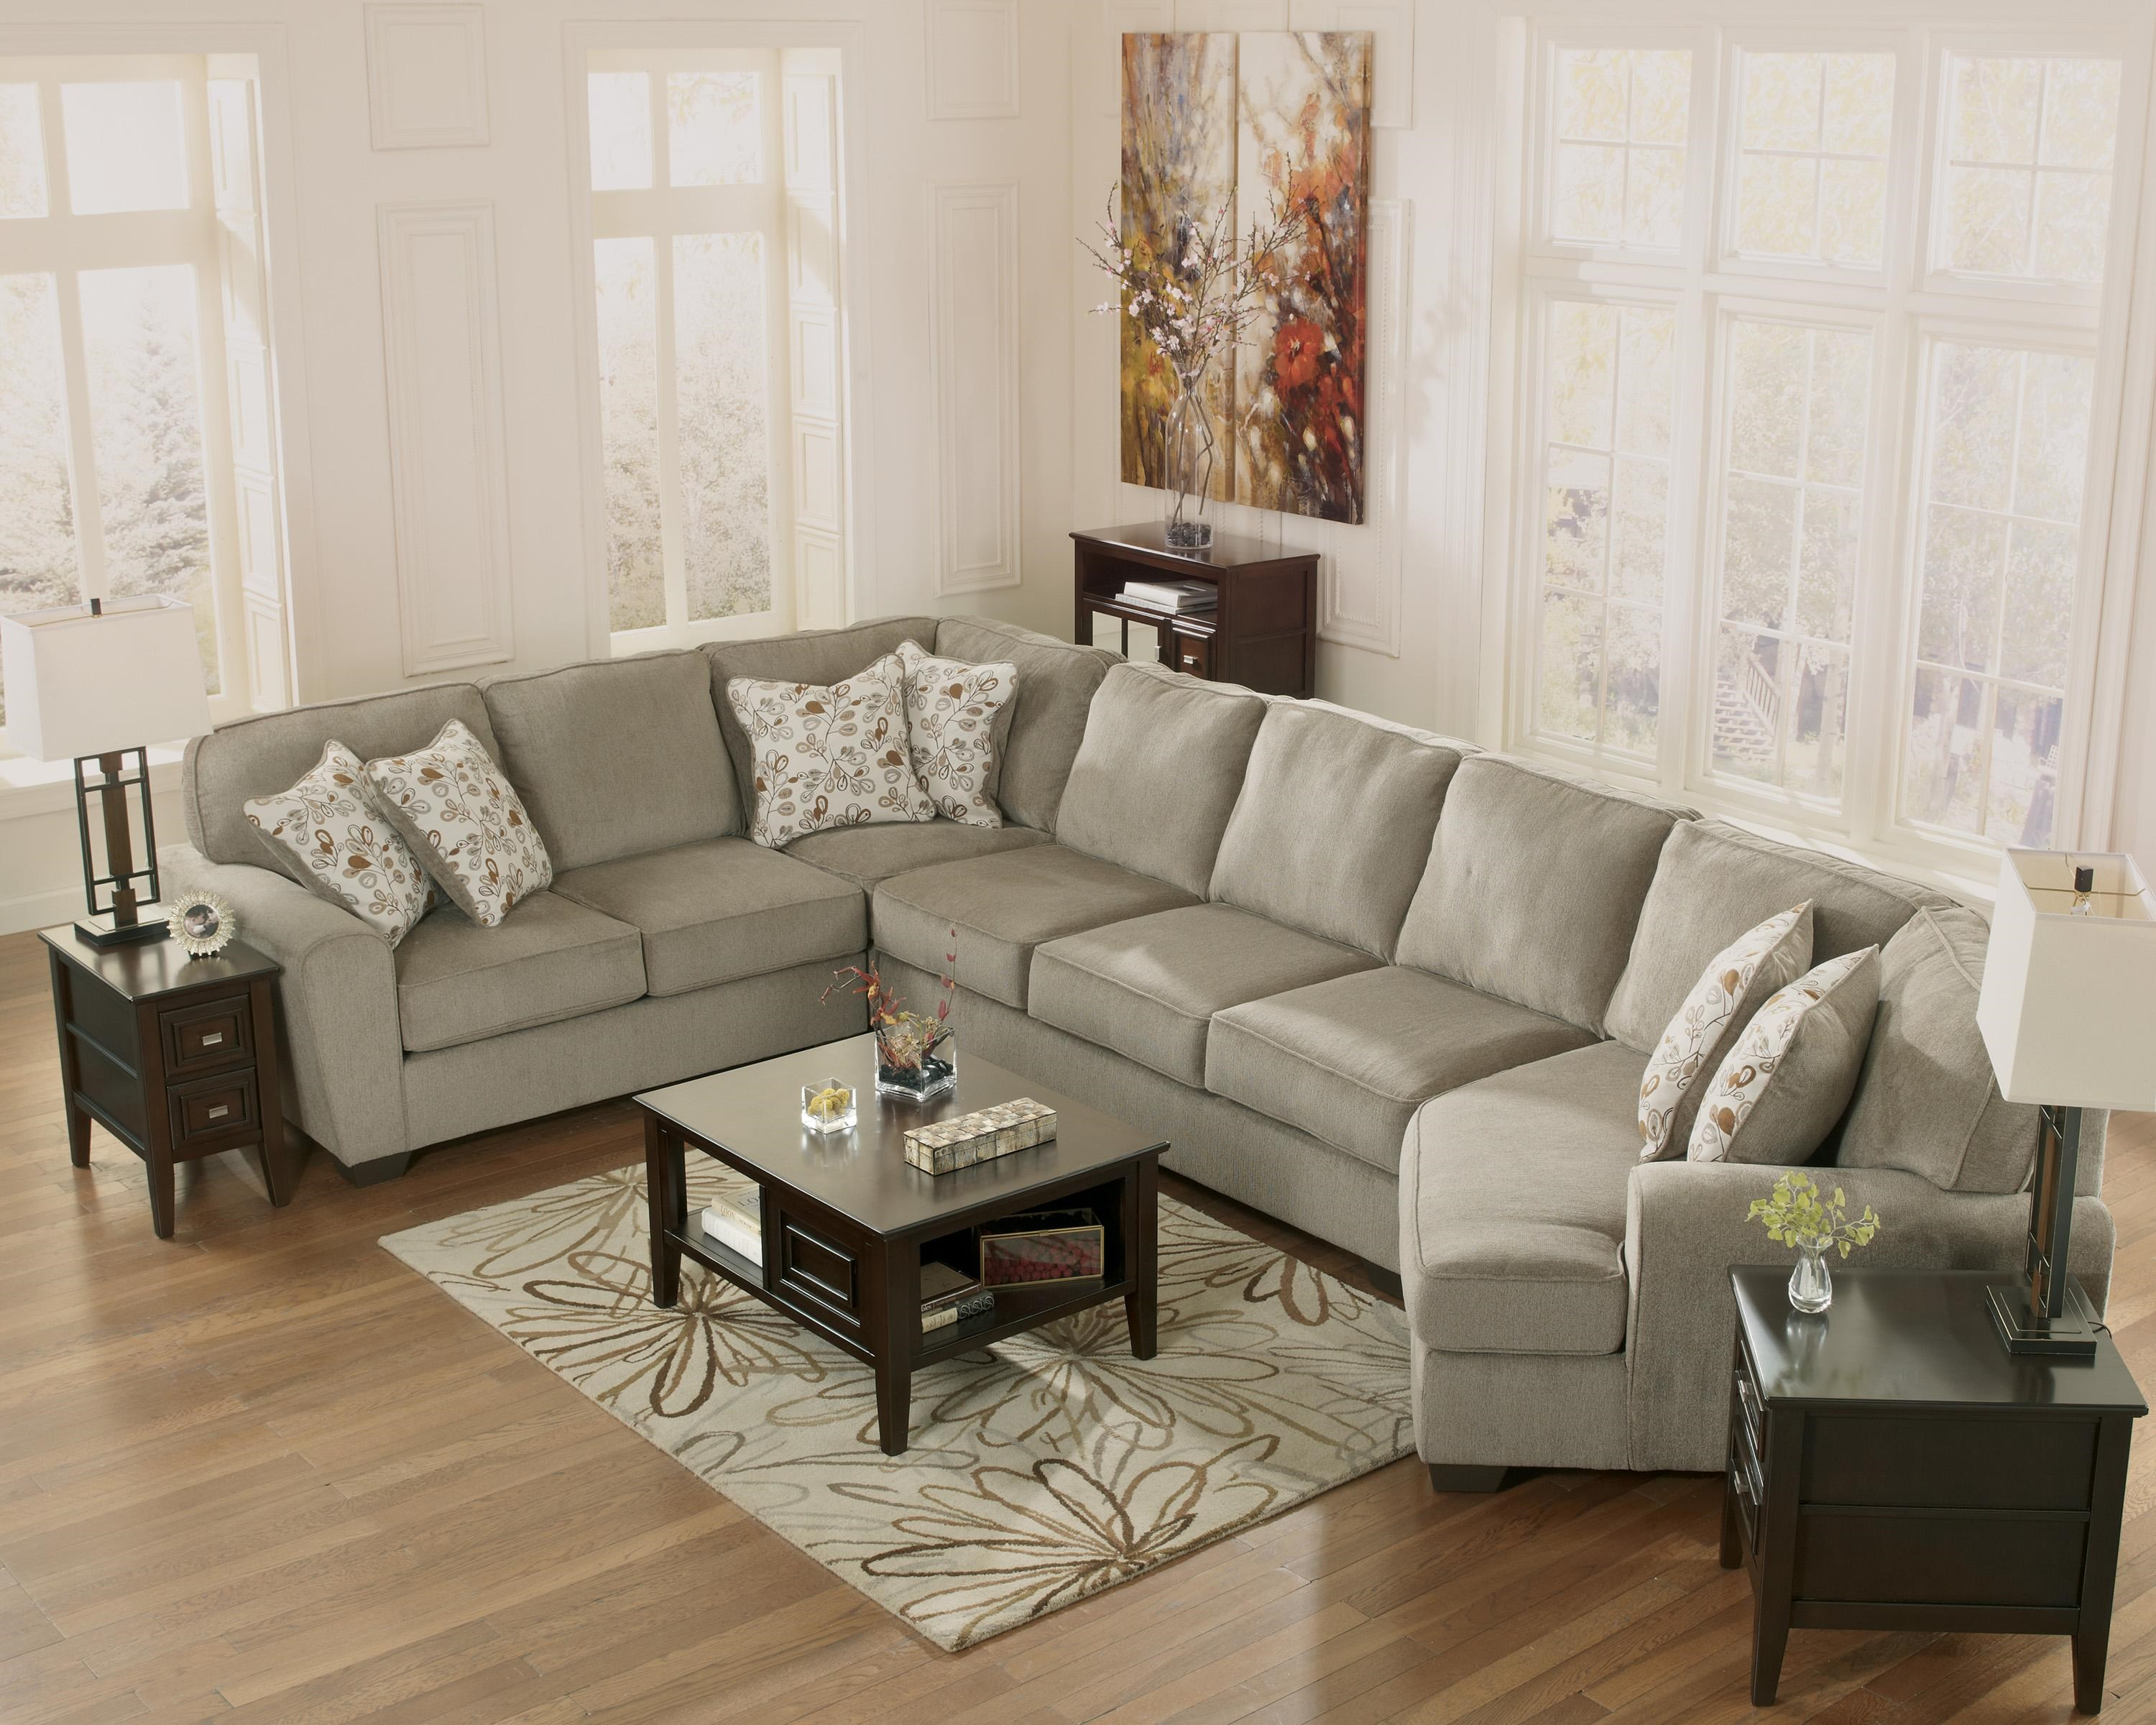 Patola Park - Patina 4-Piece Sectional with Right Cuddler by Ashley Furniture : ashley furniture patola park sectional - Sectionals, Sofas & Couches